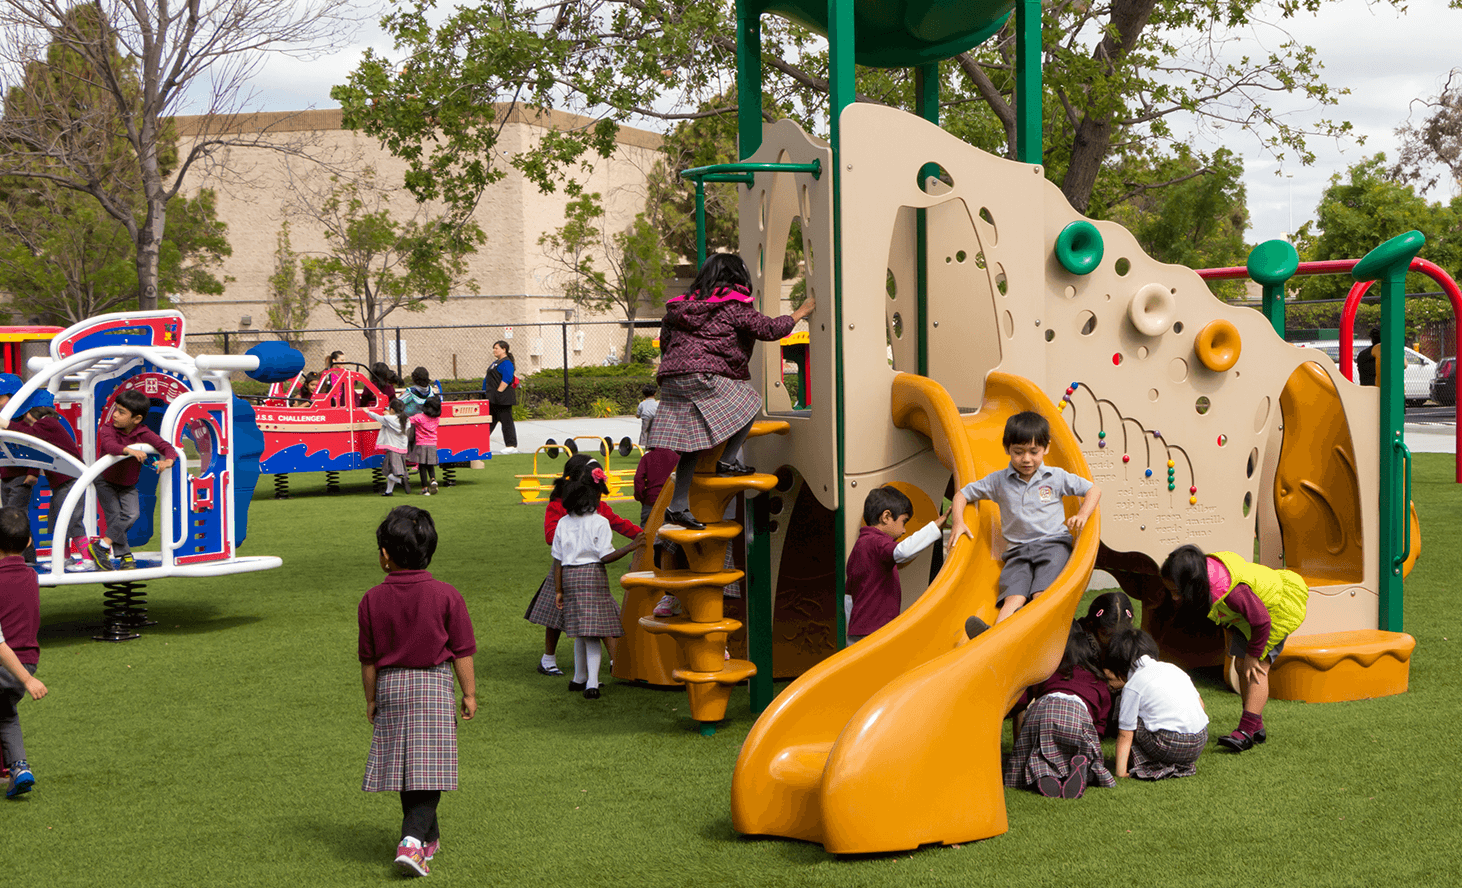 Playground | Challenger School - Newark | Private School In Newark, California